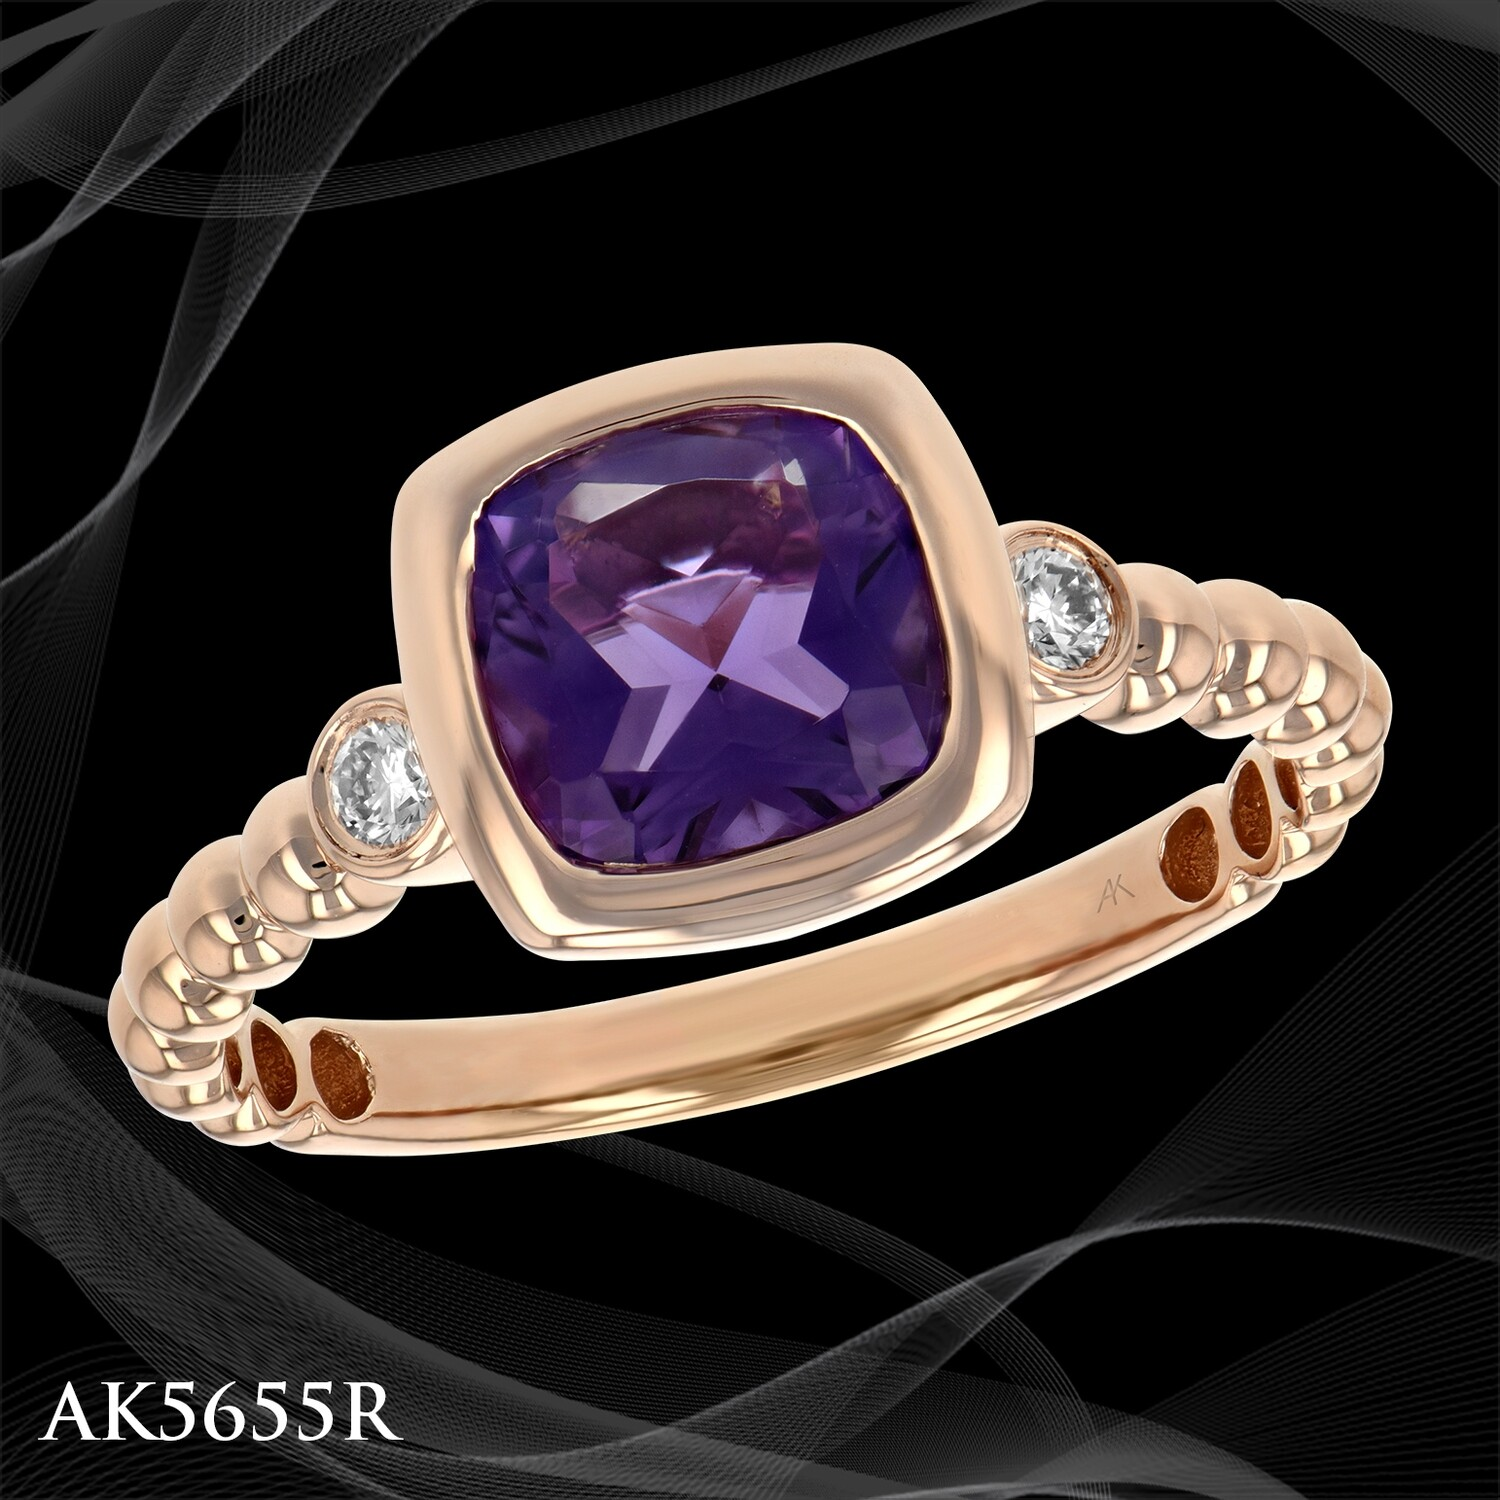 ​14 KARAT ROSE GOLD BEZEL SET CUSHION AMETHYST RING